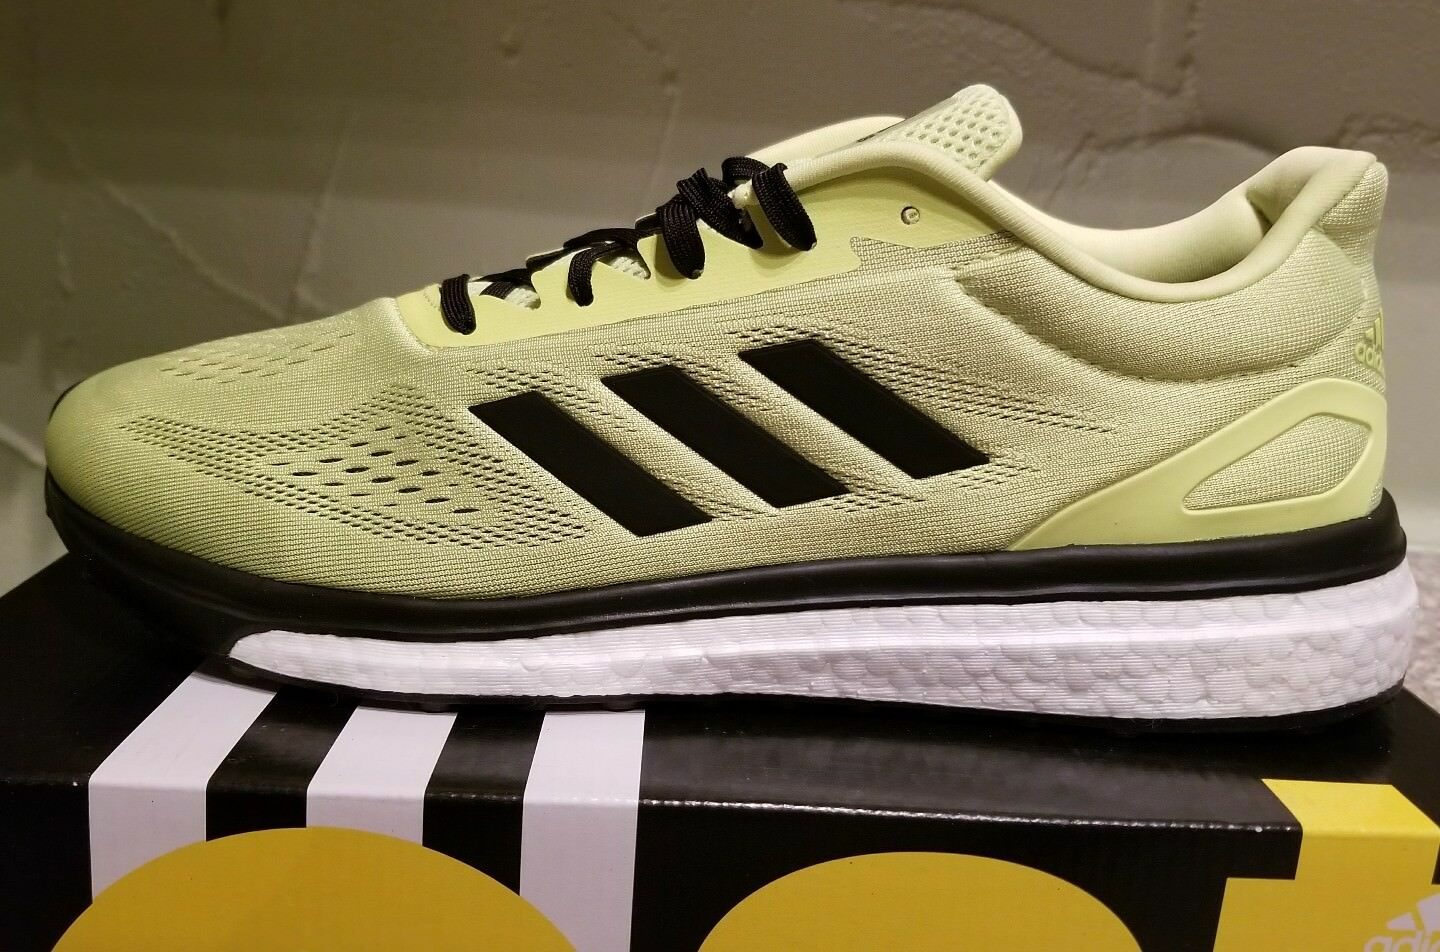 NEW ADIDAS MEN'S RESPONSE  BOOST LT SNEAKERS SHOES  SIZE 11.5